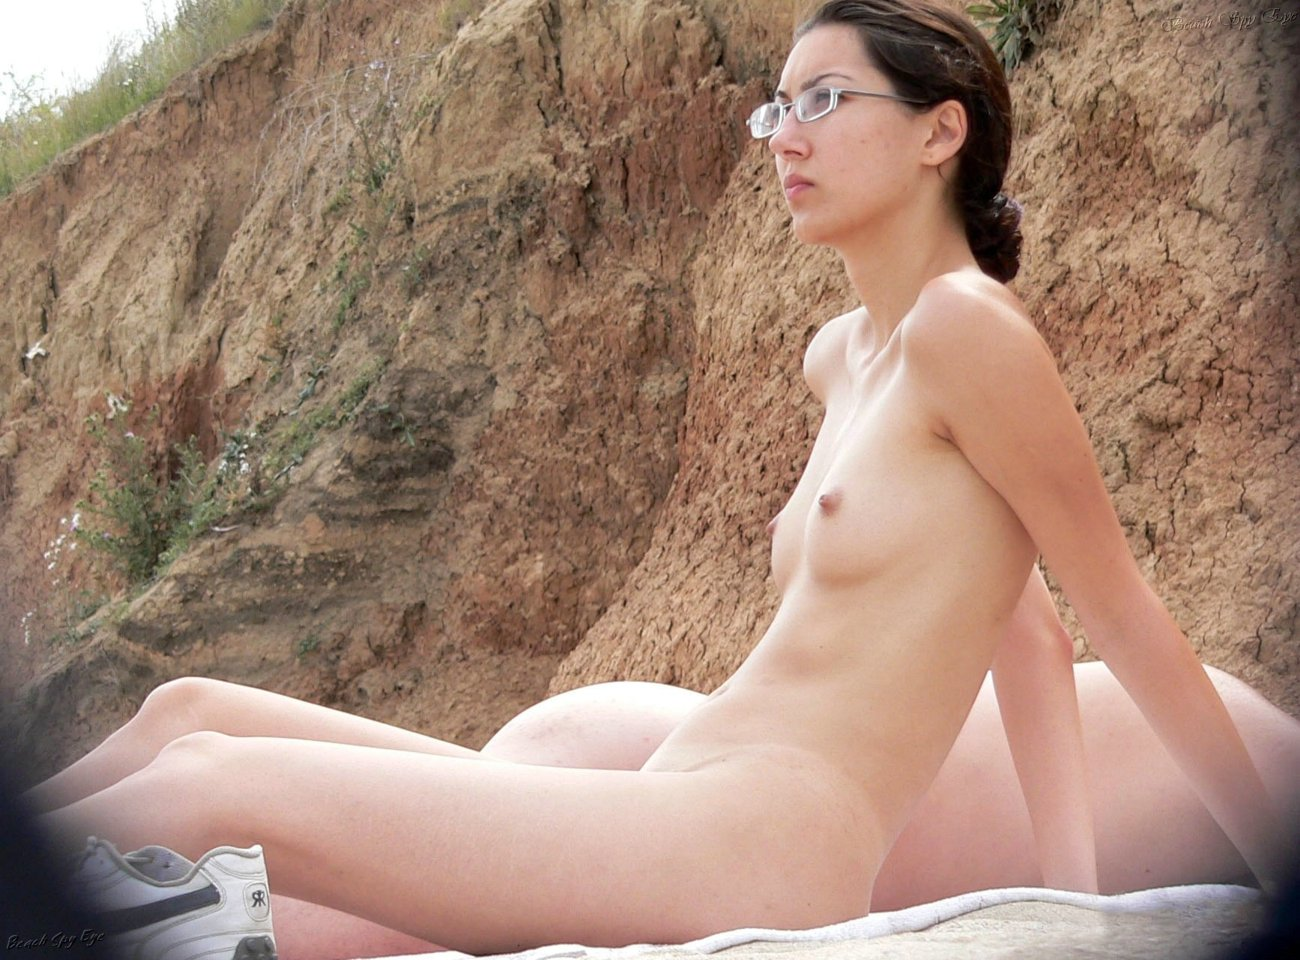 pictures of naked women sex nude women beaches filmed